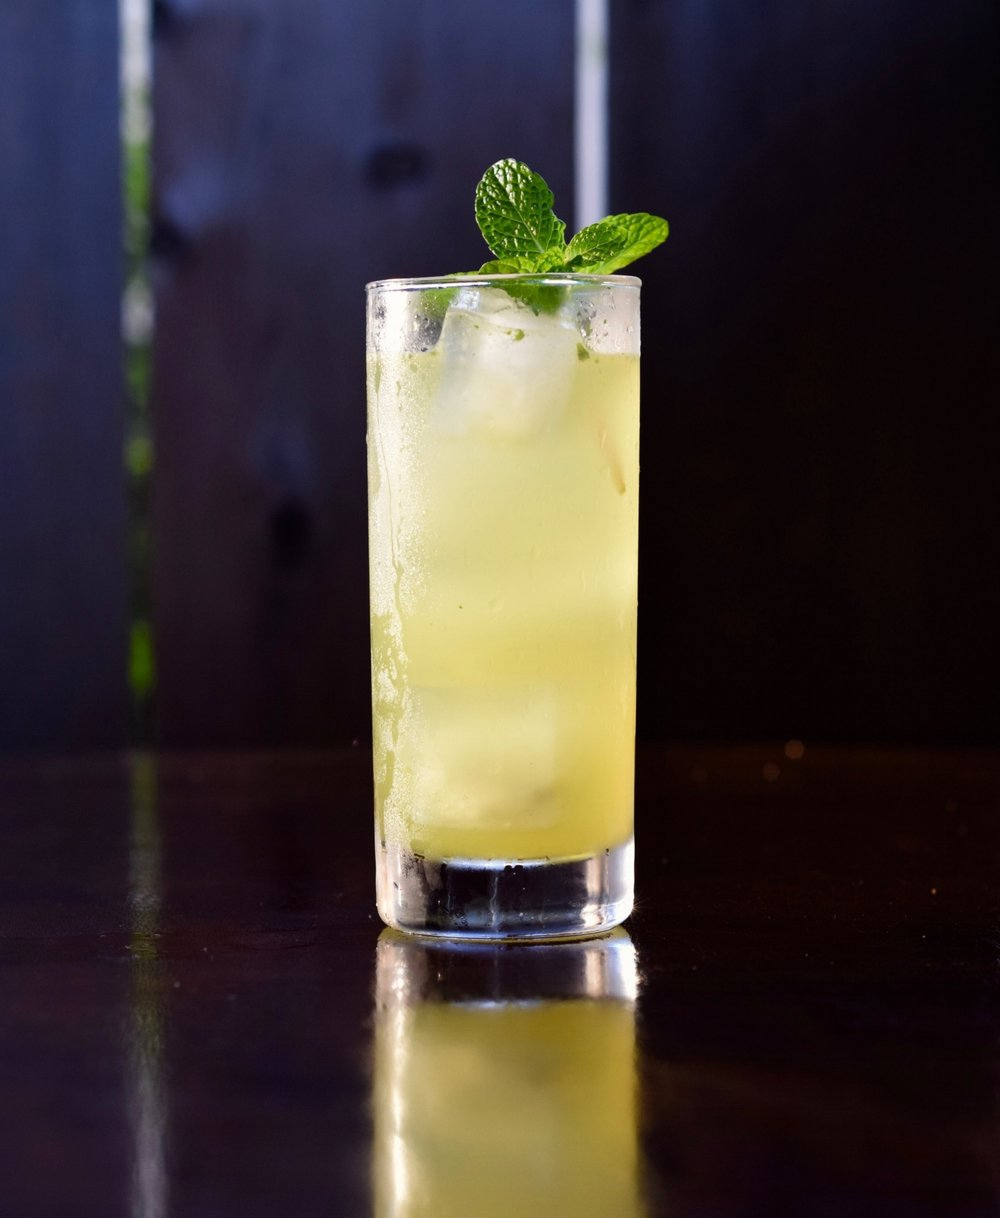 GREEN THUMB - 2 oz cachaça1 barspoon absinthe1/2 oz nostrum pineapple turmeric ginger shrub1/2 oz fresh lime juice1/2 oz simple syrup2 oz soda waterBuild over ice.